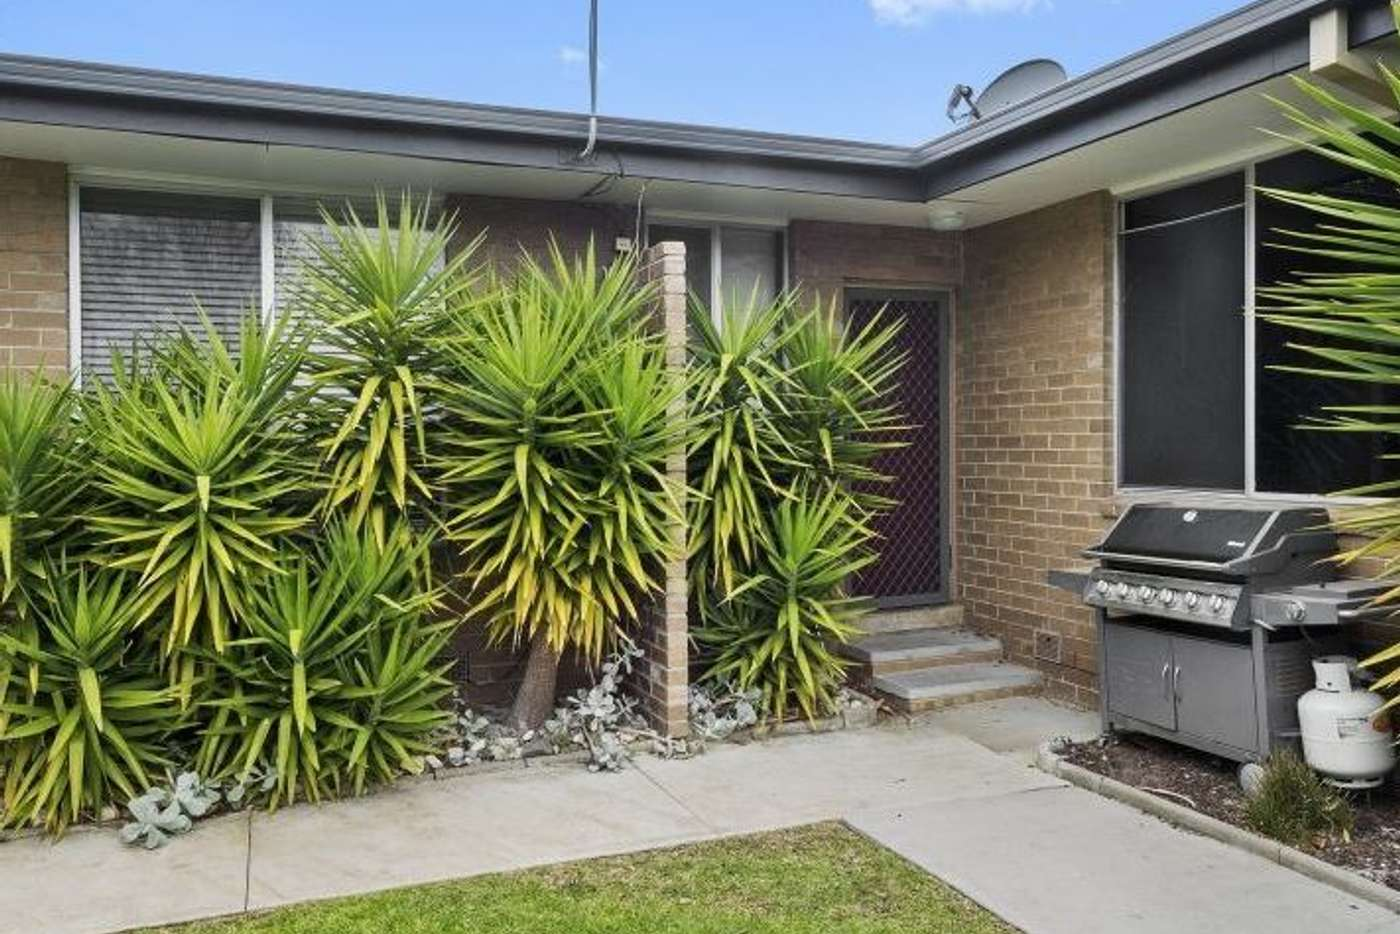 Main view of Homely unit listing, 5/32 Adelaide Street, Mornington VIC 3931